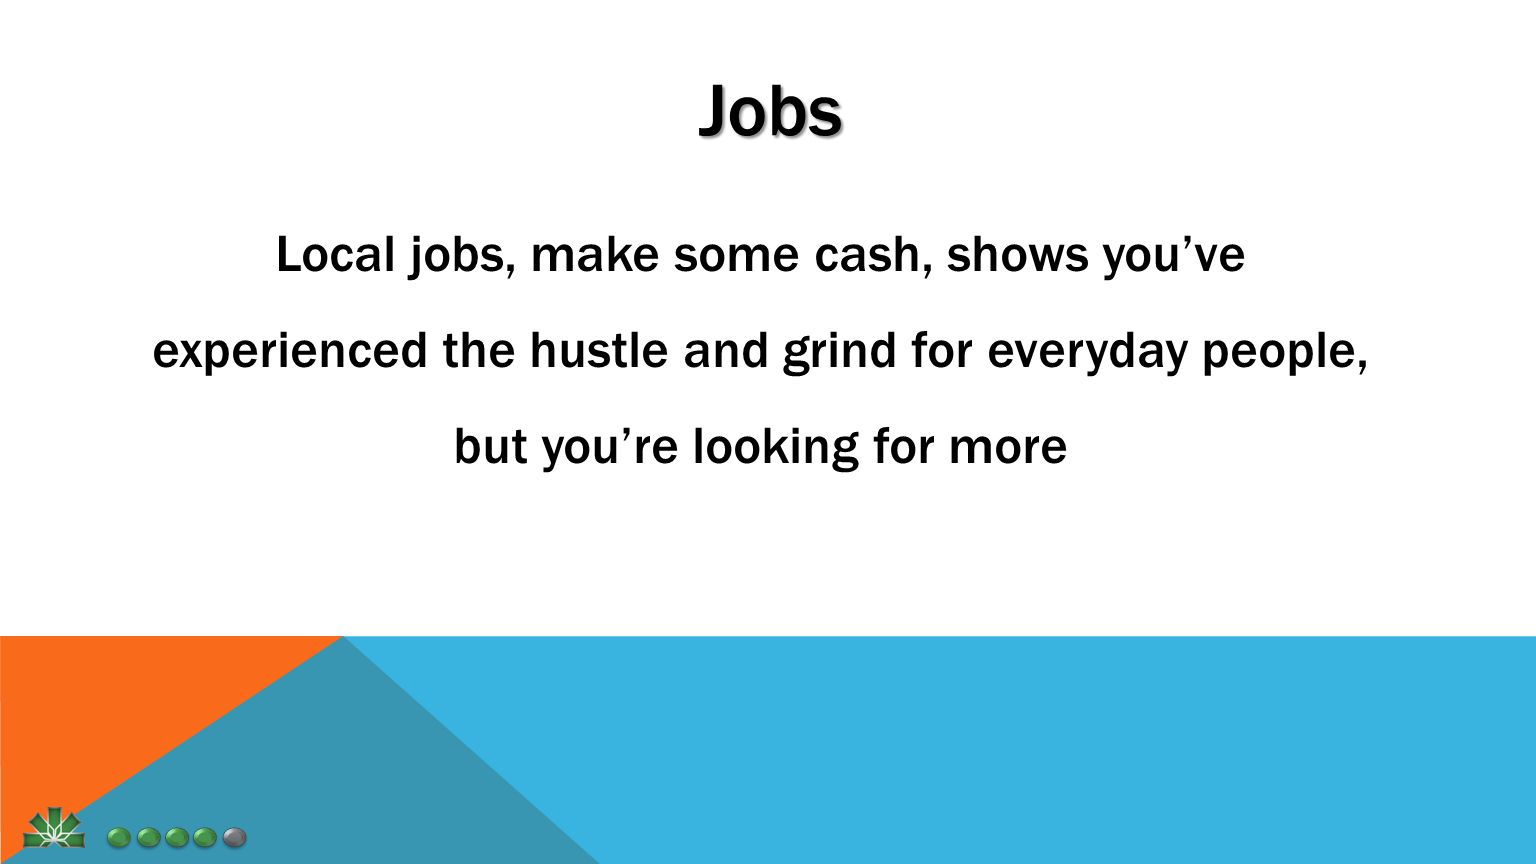 Jobs Local jobs, make some cash, shows you've experienced the hustle and grind for everyday people, but you're looking for more